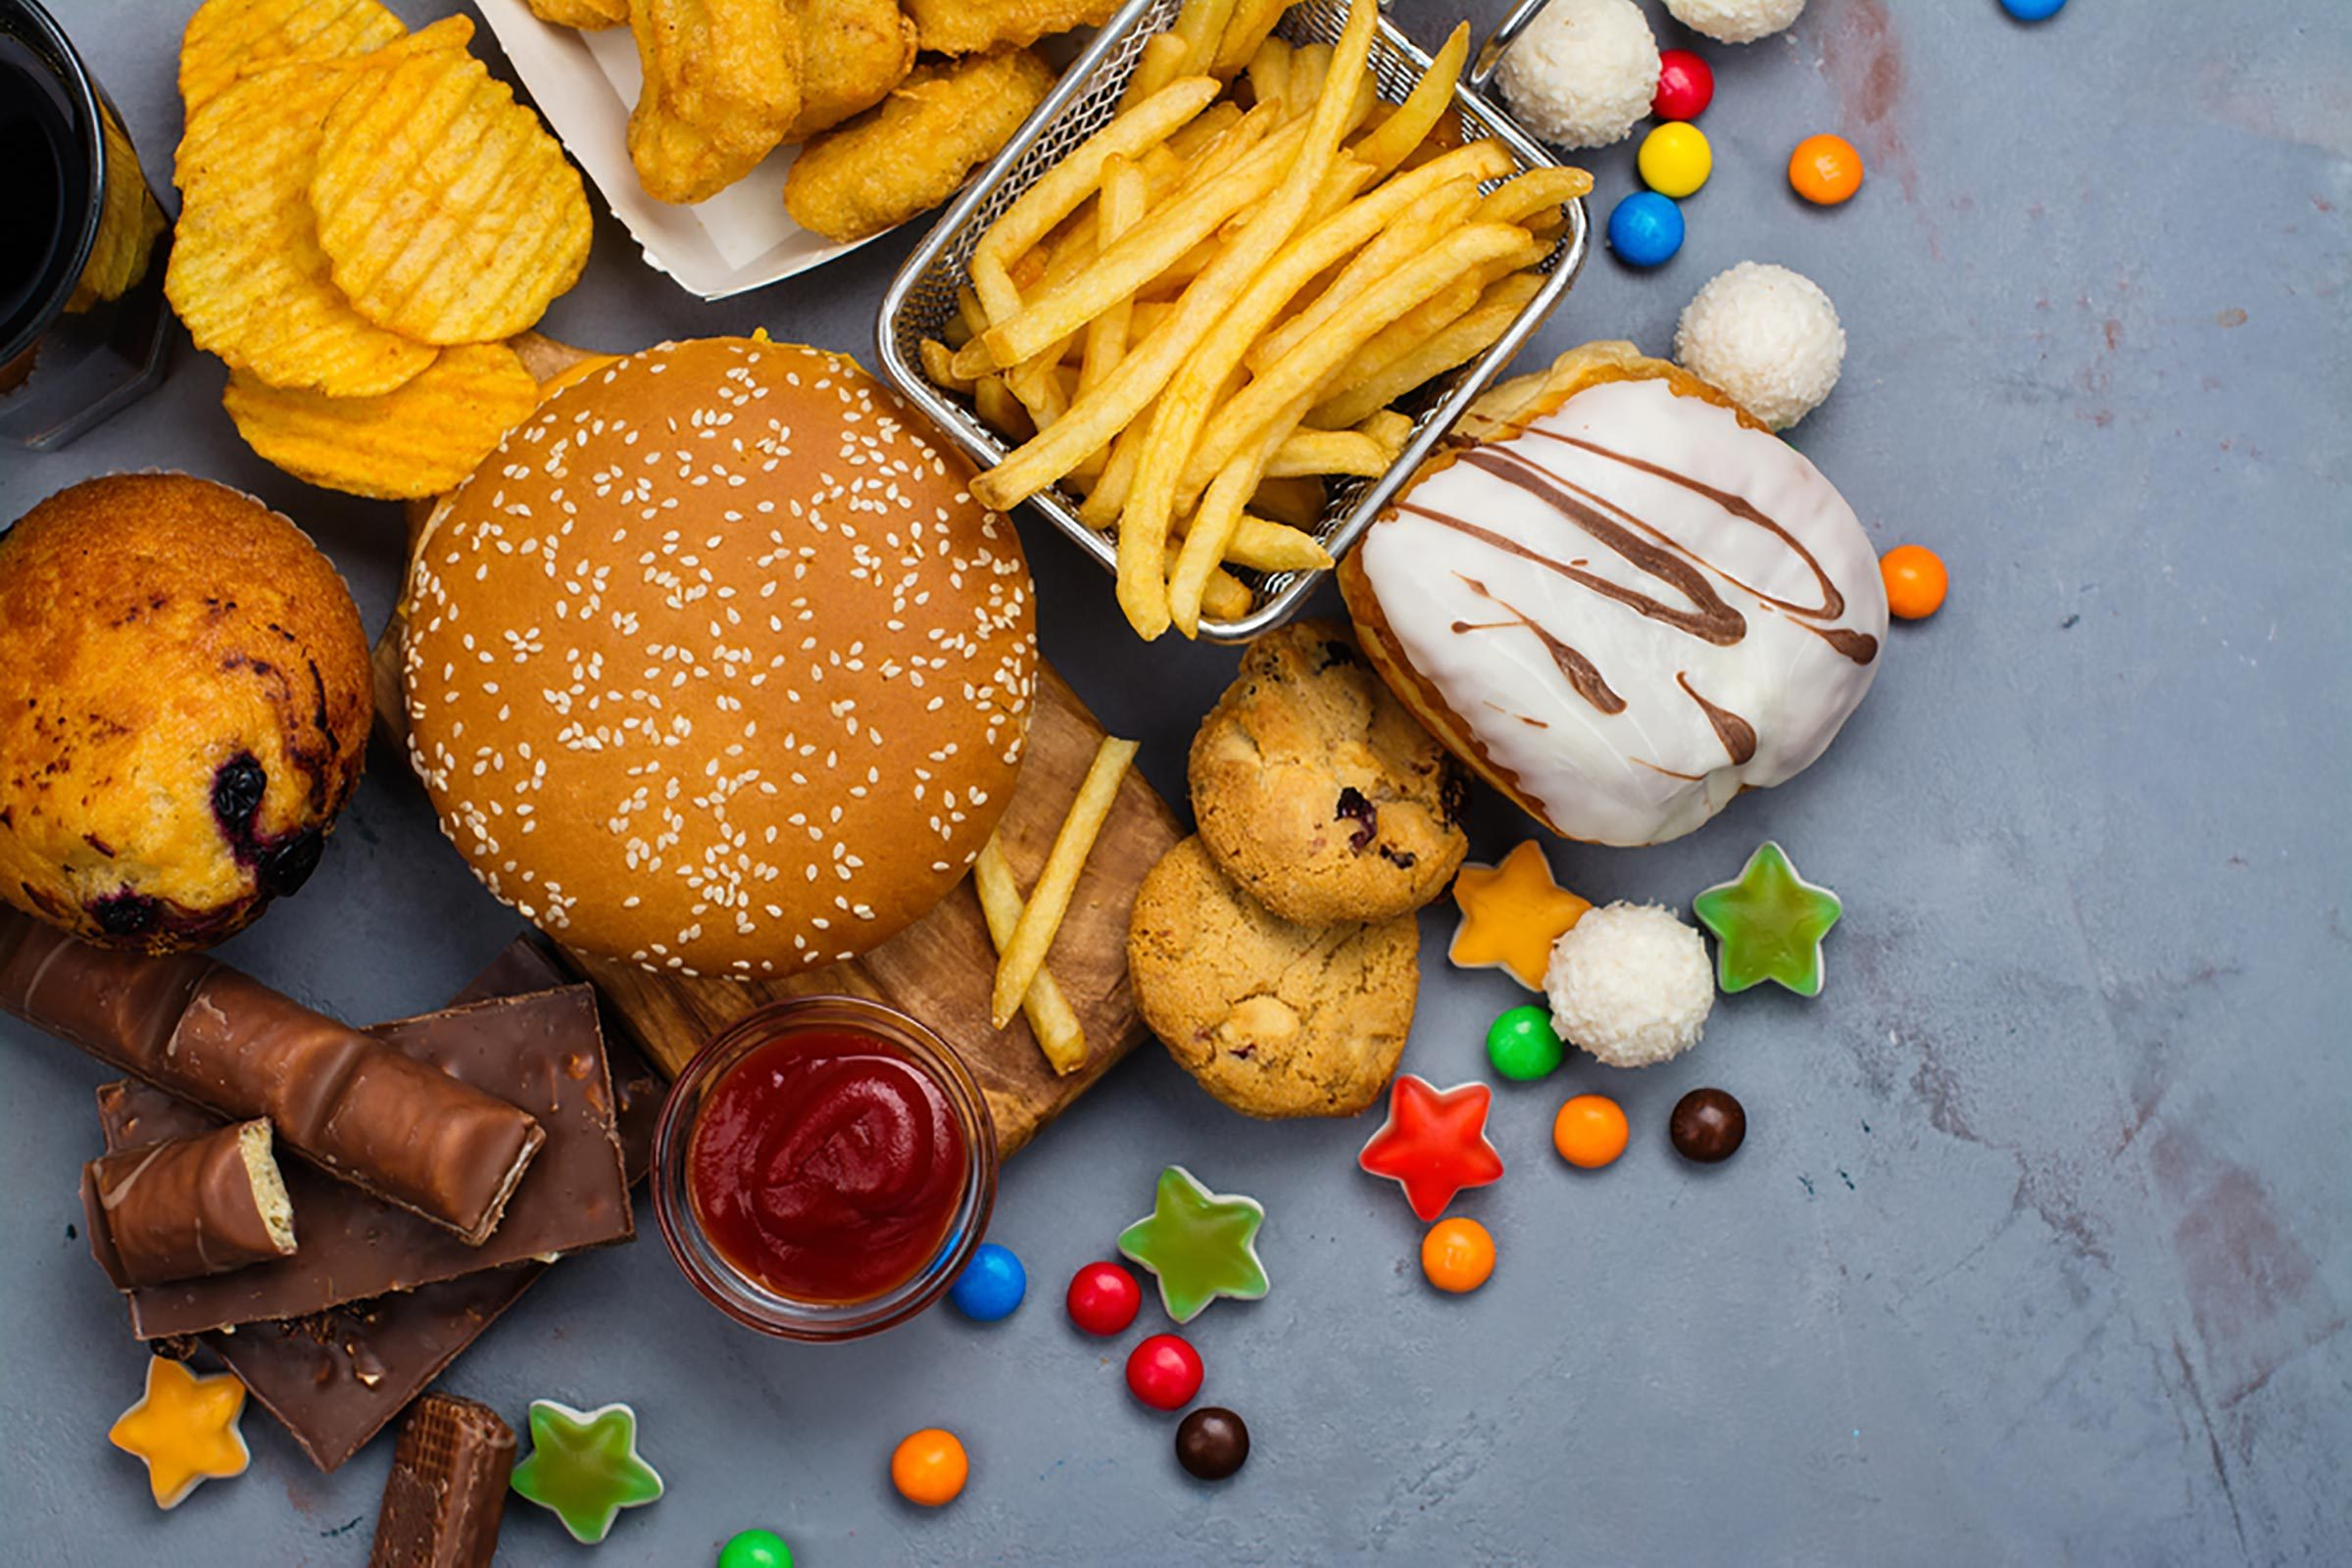 a variety of junk food: fries, burger, chips, candy, cookies